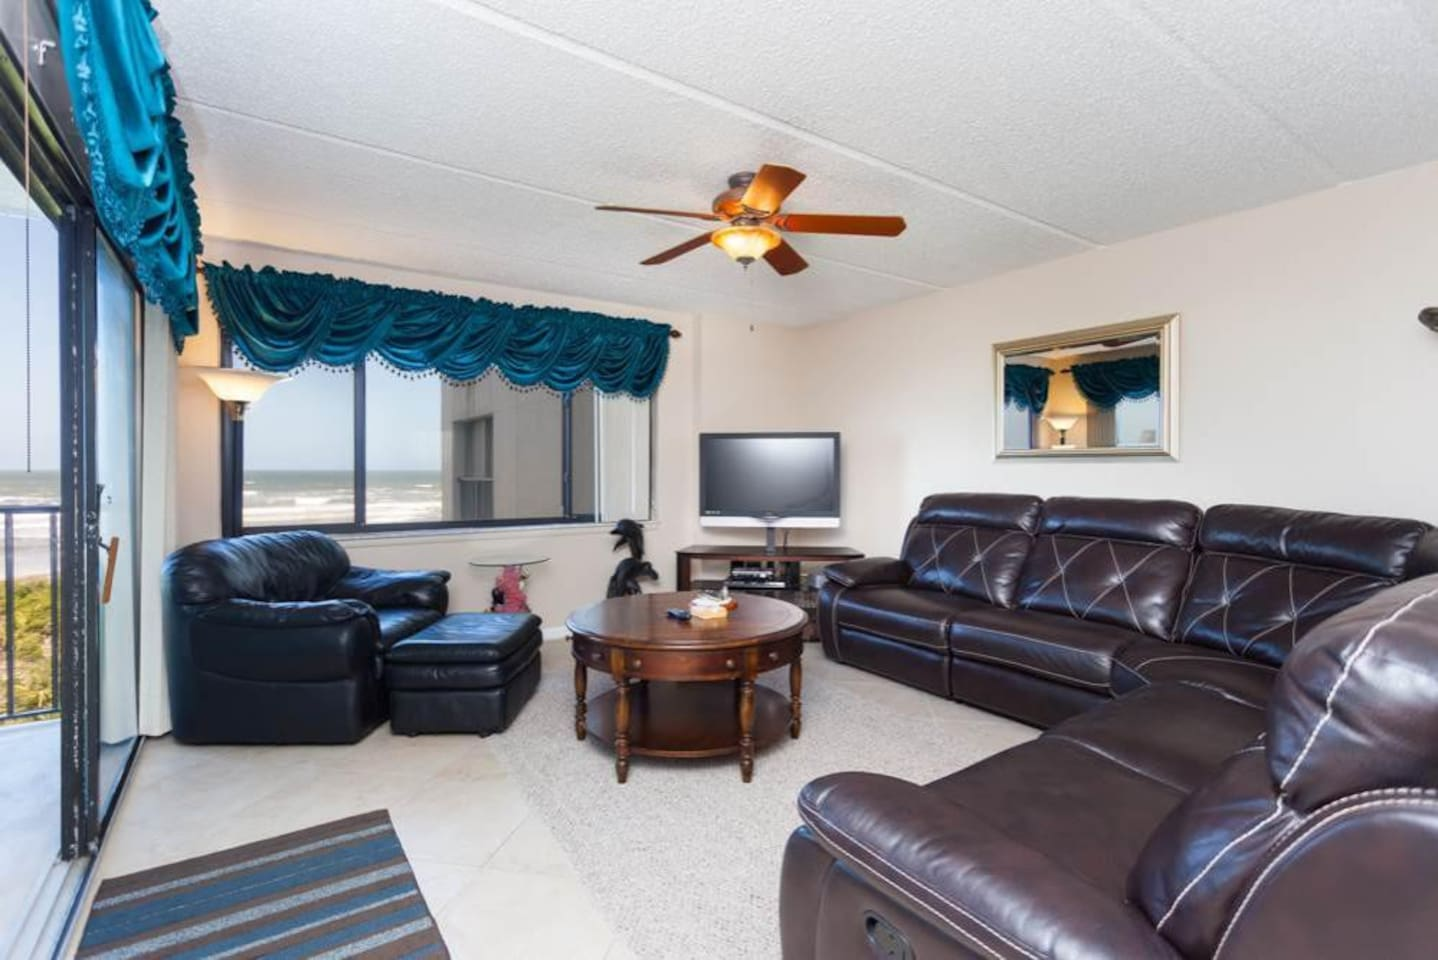 Welcome to Windjammer 206! - This 3 bed, 2 bath newly updated condo sits out upon the ocean. Your friends and family will marvel